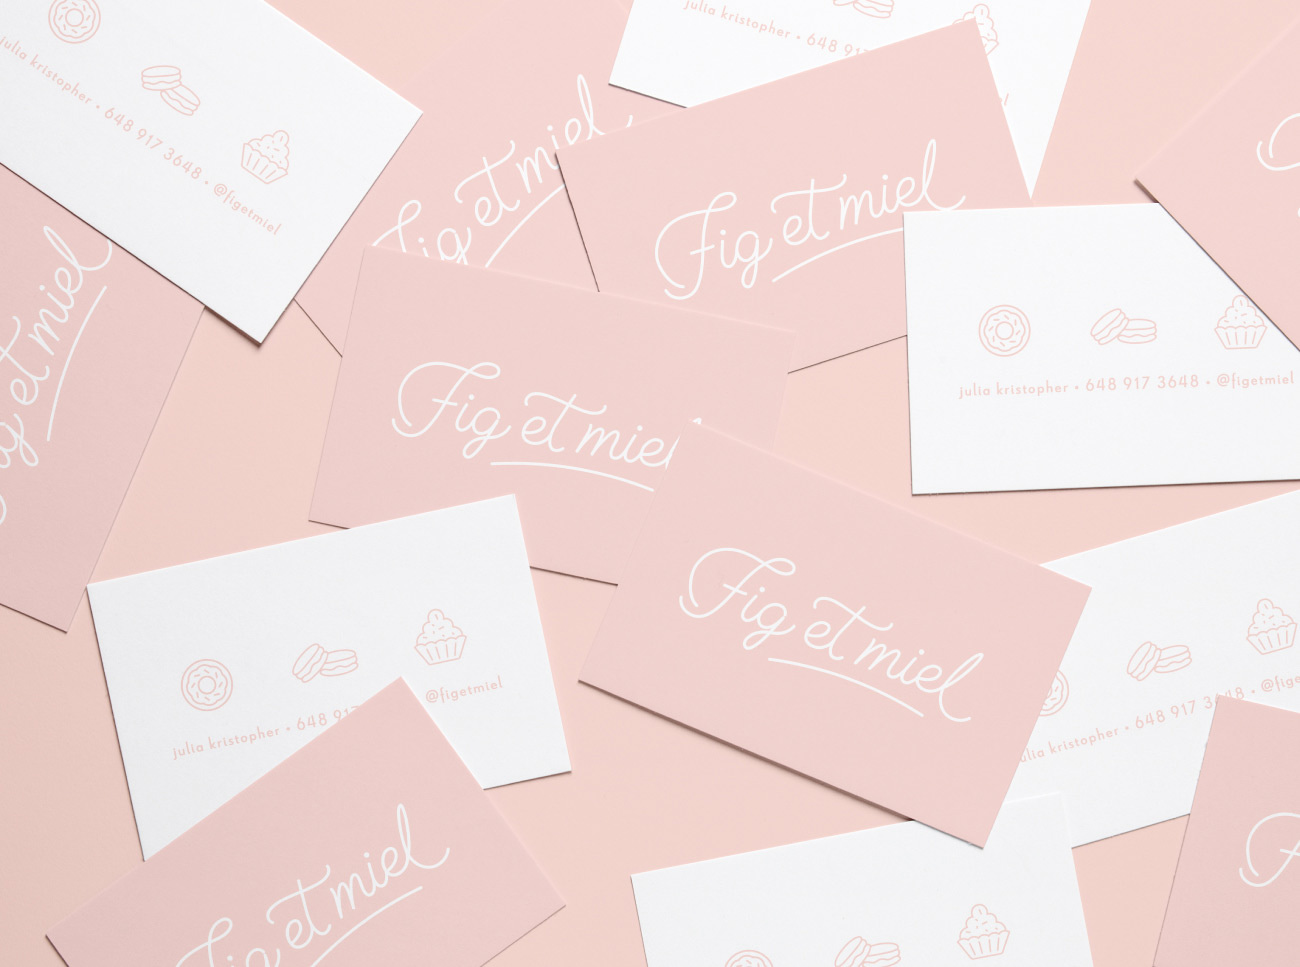 Bakery Figue & Miel - business cards